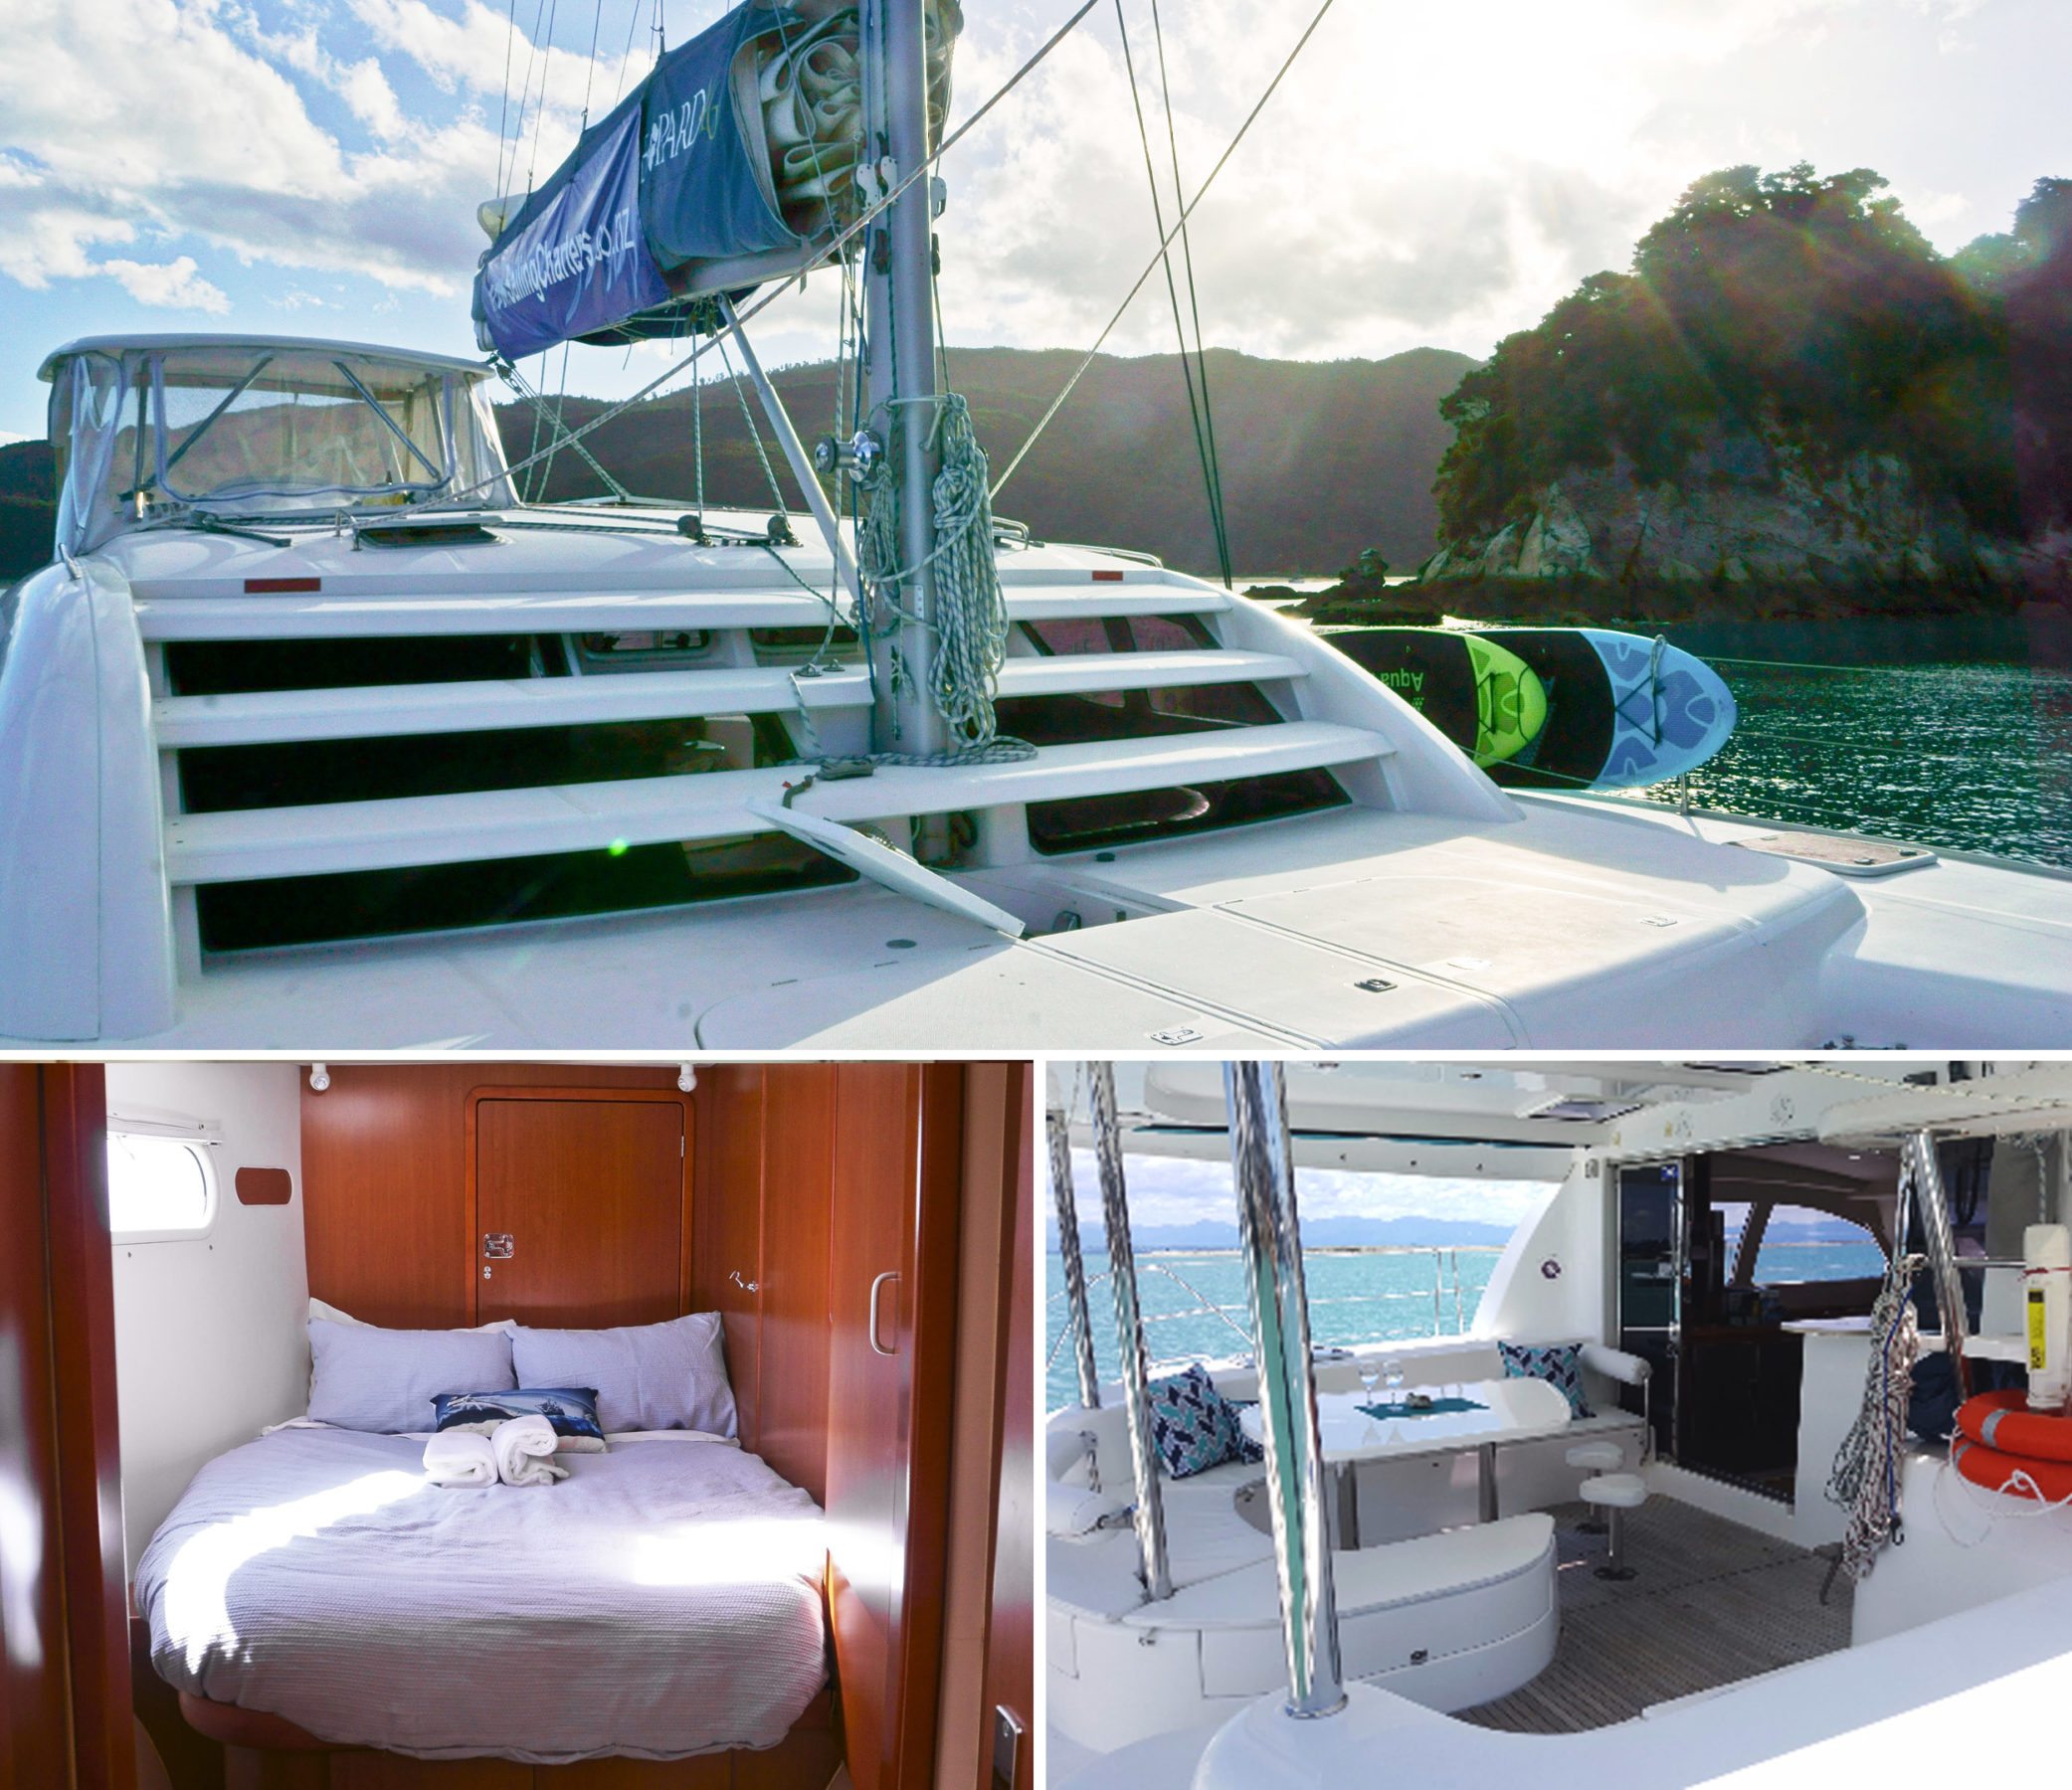 A collage of the exterior, a wood panelled bedroom and decks of a boat at Abel Tasman National Park